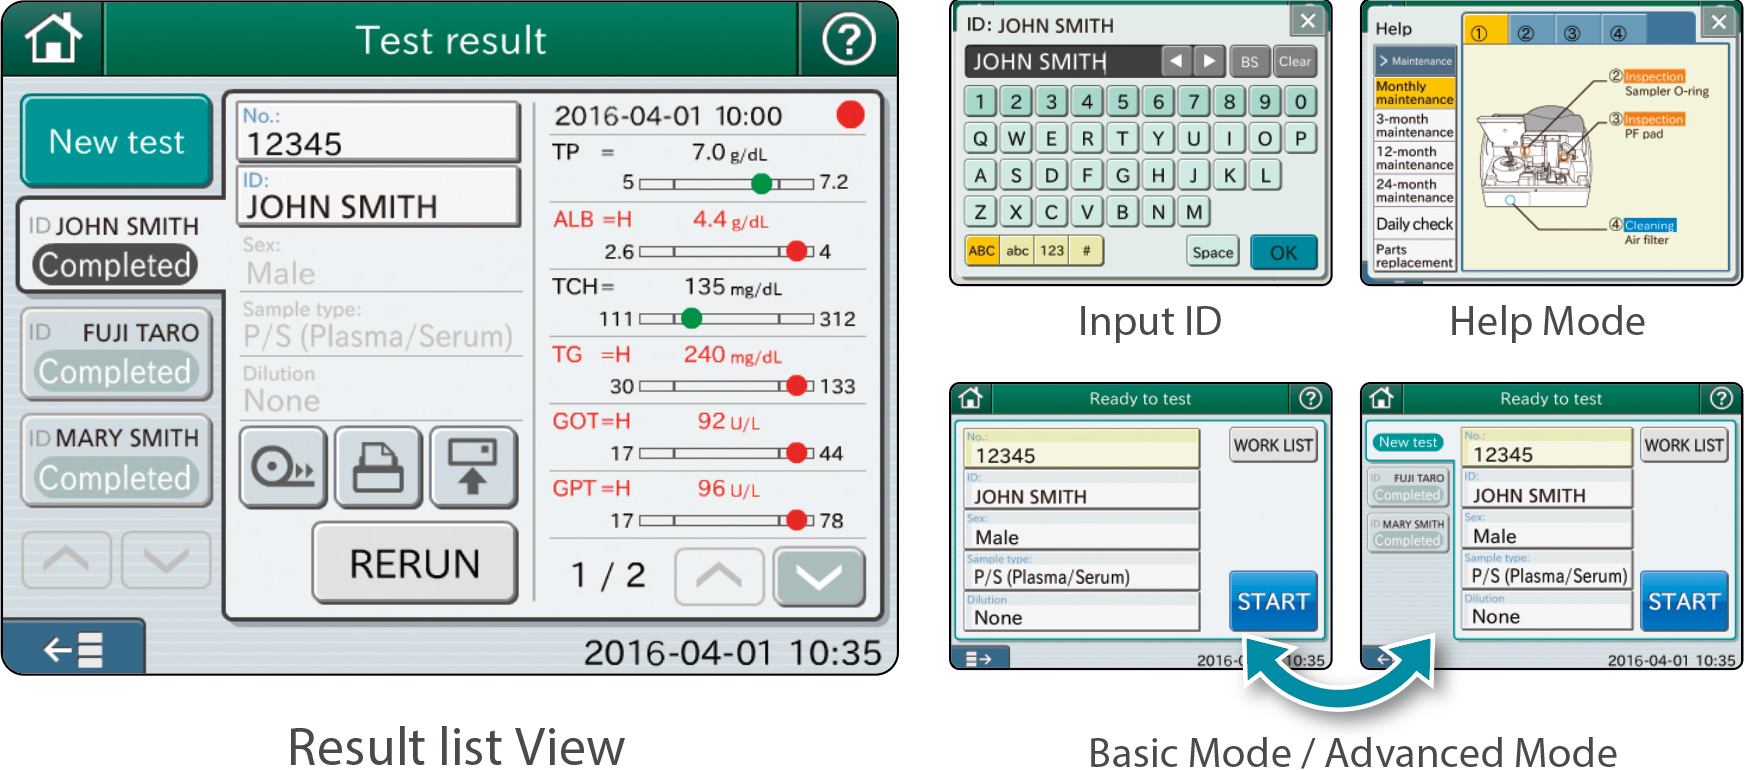 [image] Result list view with list of test results on screen, labeled by patient name and other modes: Help mode, Basic mode/Advanced mode